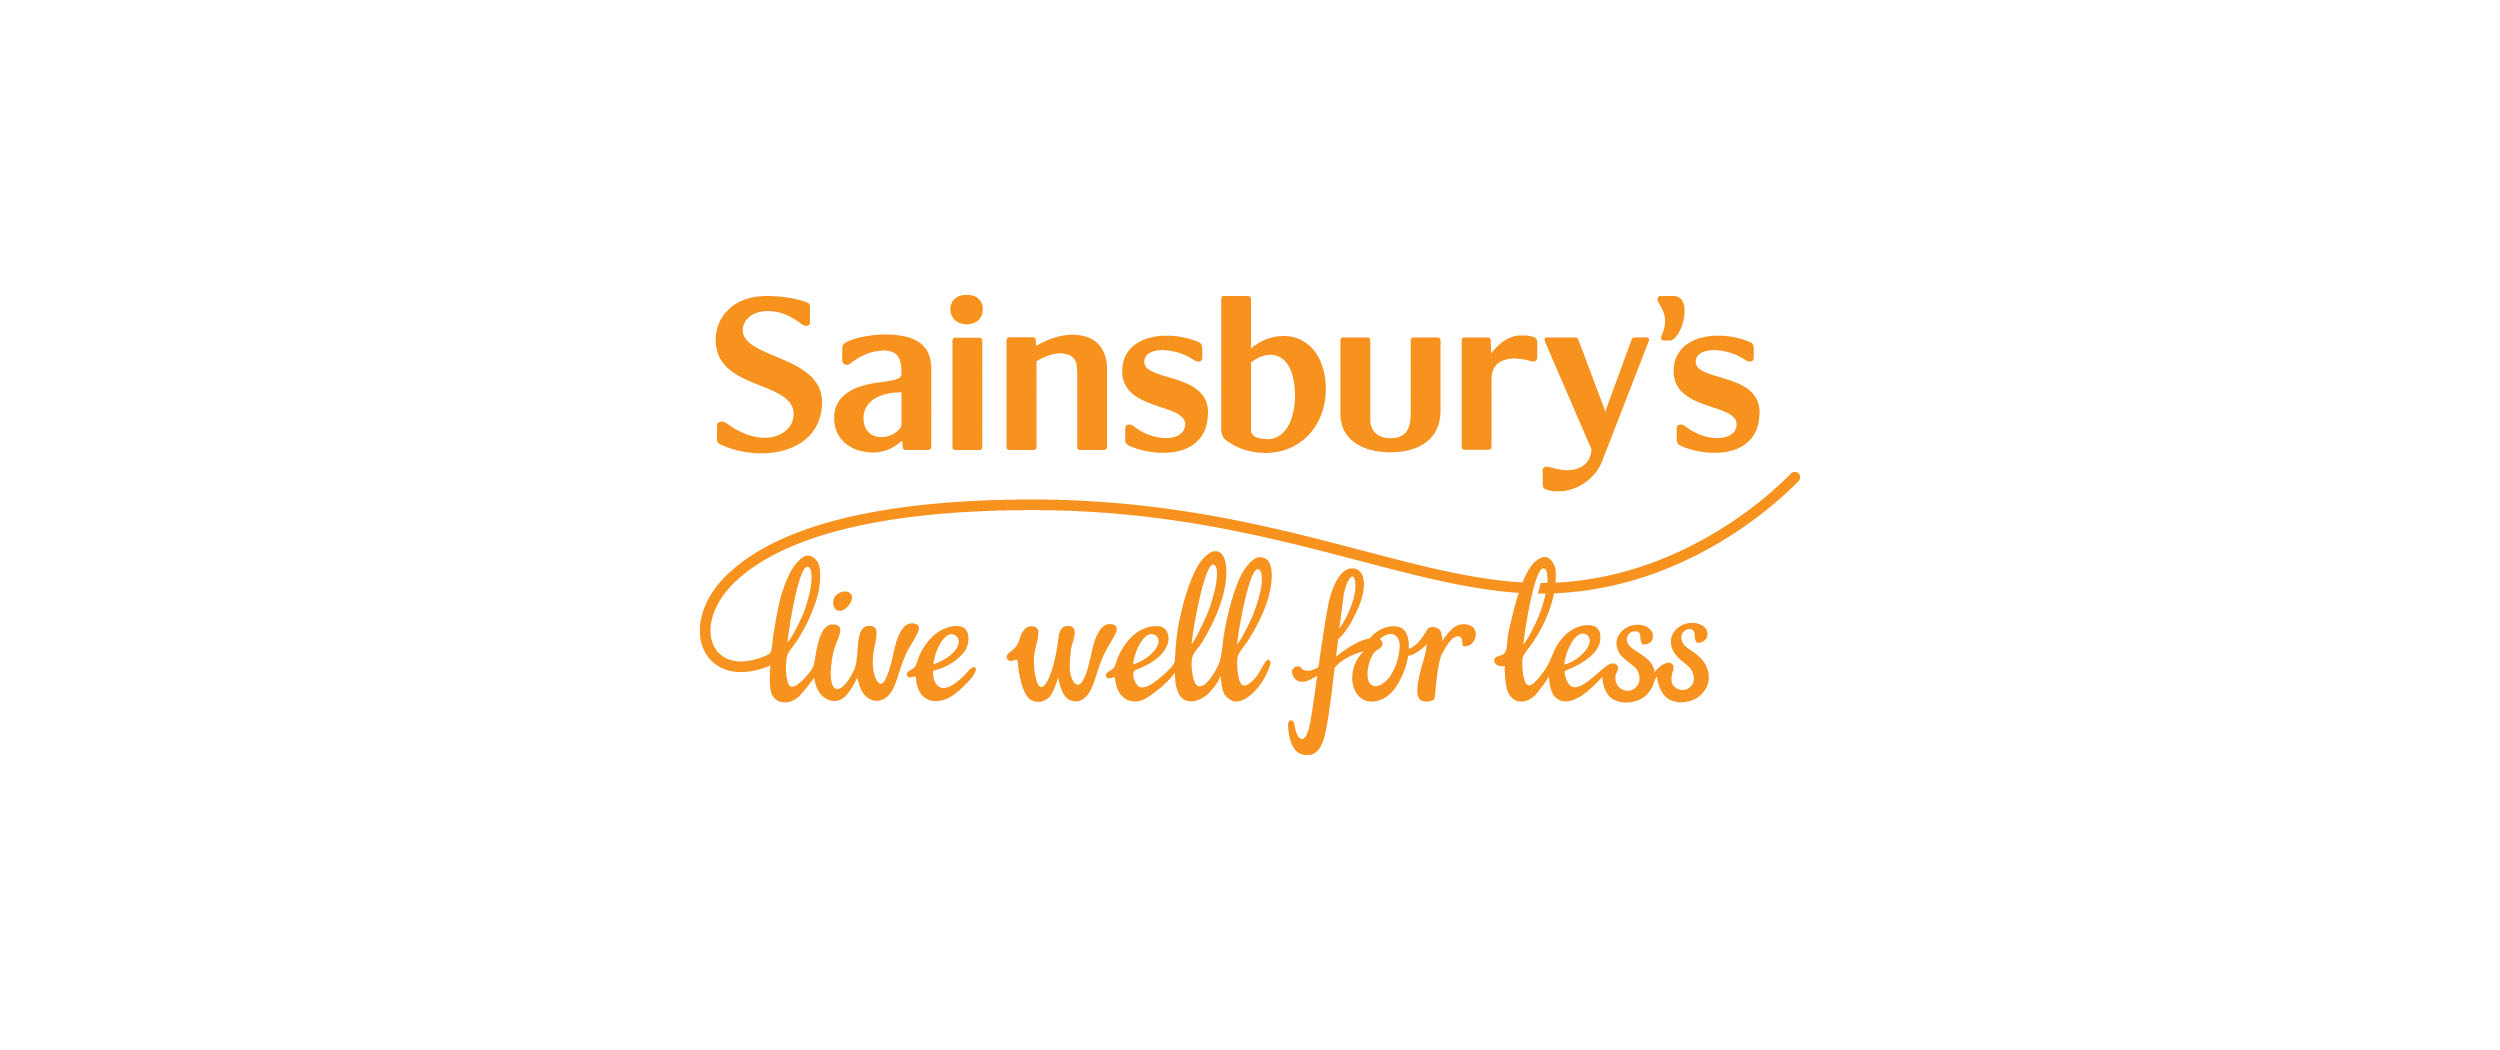 Sainsburys_Logo_LWFL_Orange copy.jpg